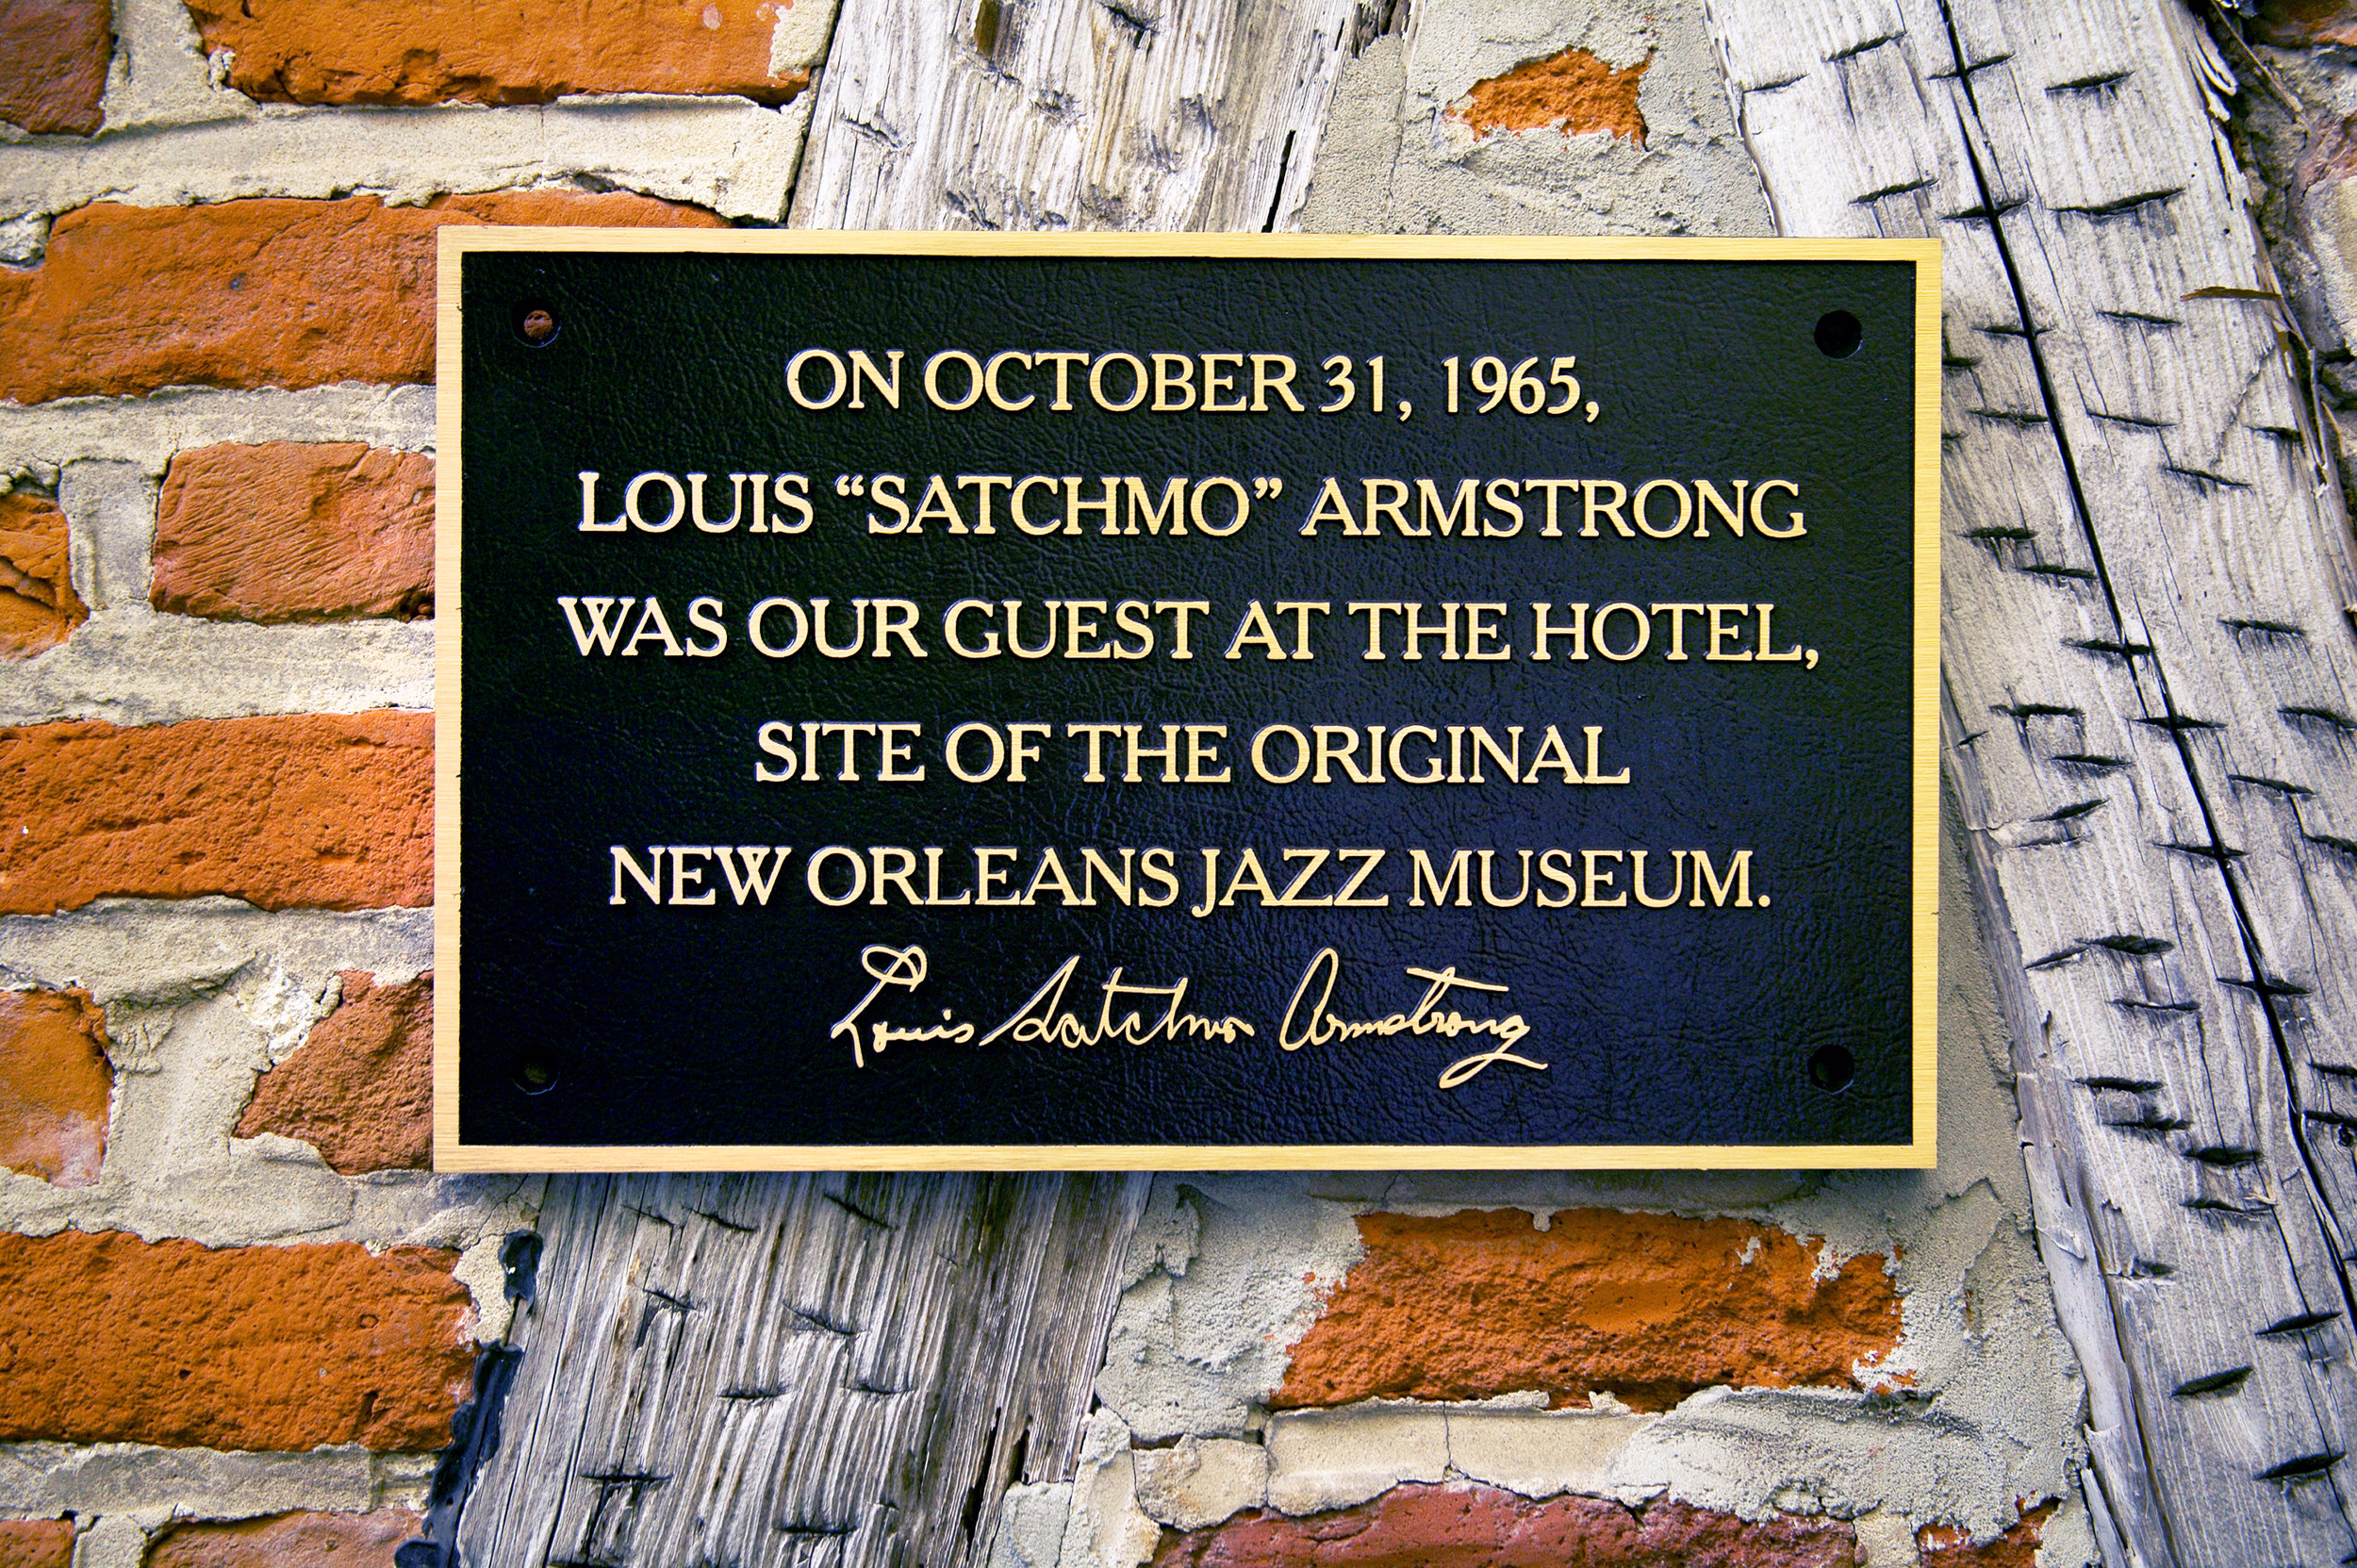 Hotel St. Pierre Louis Armstrong Plaque.jpg